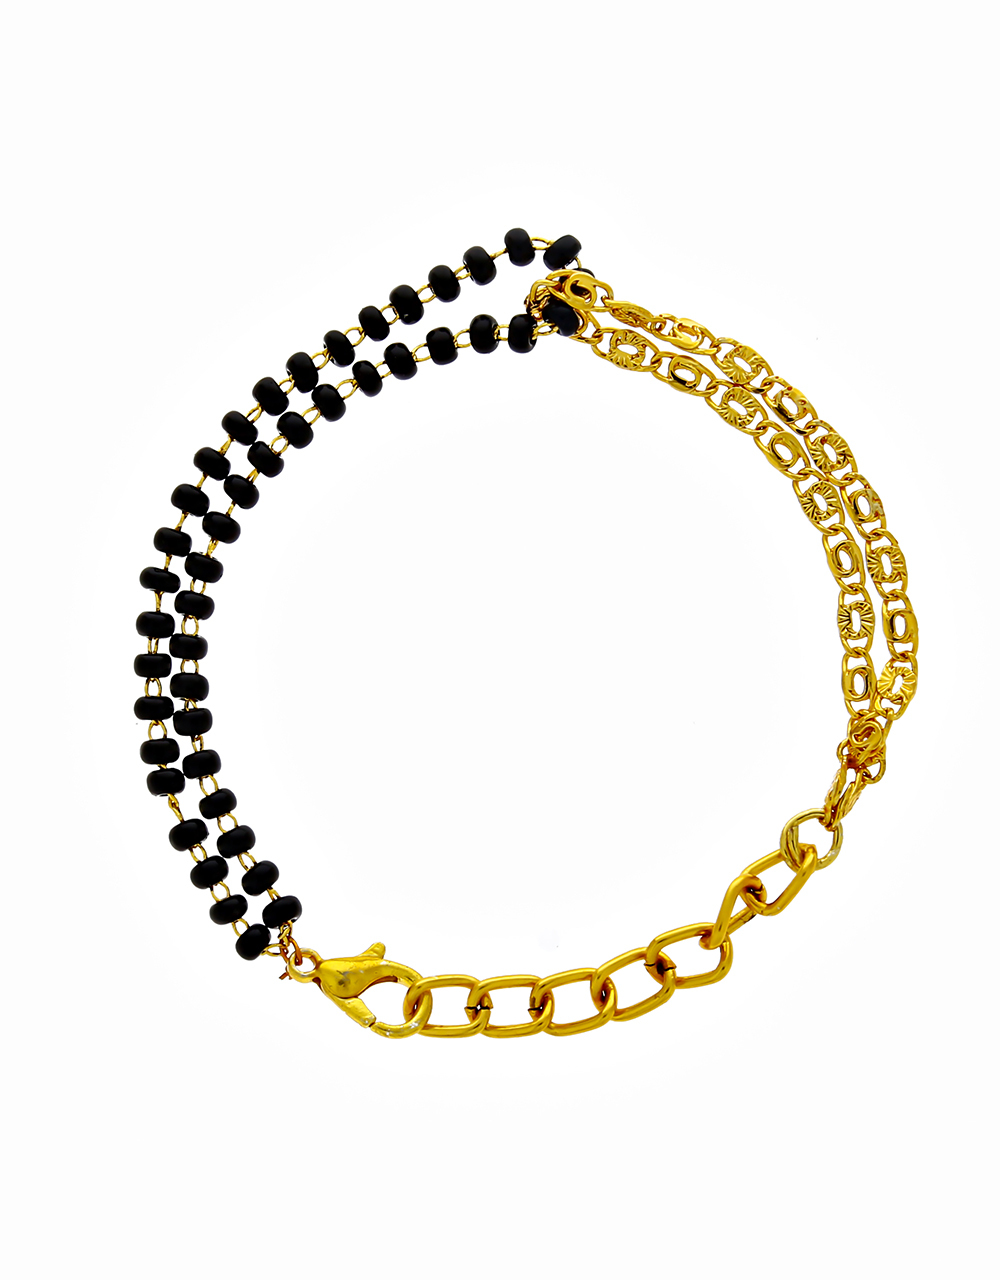 Beautiful Golden Chain Black Breads Hand Mangalsutra for Women Stylish Latest